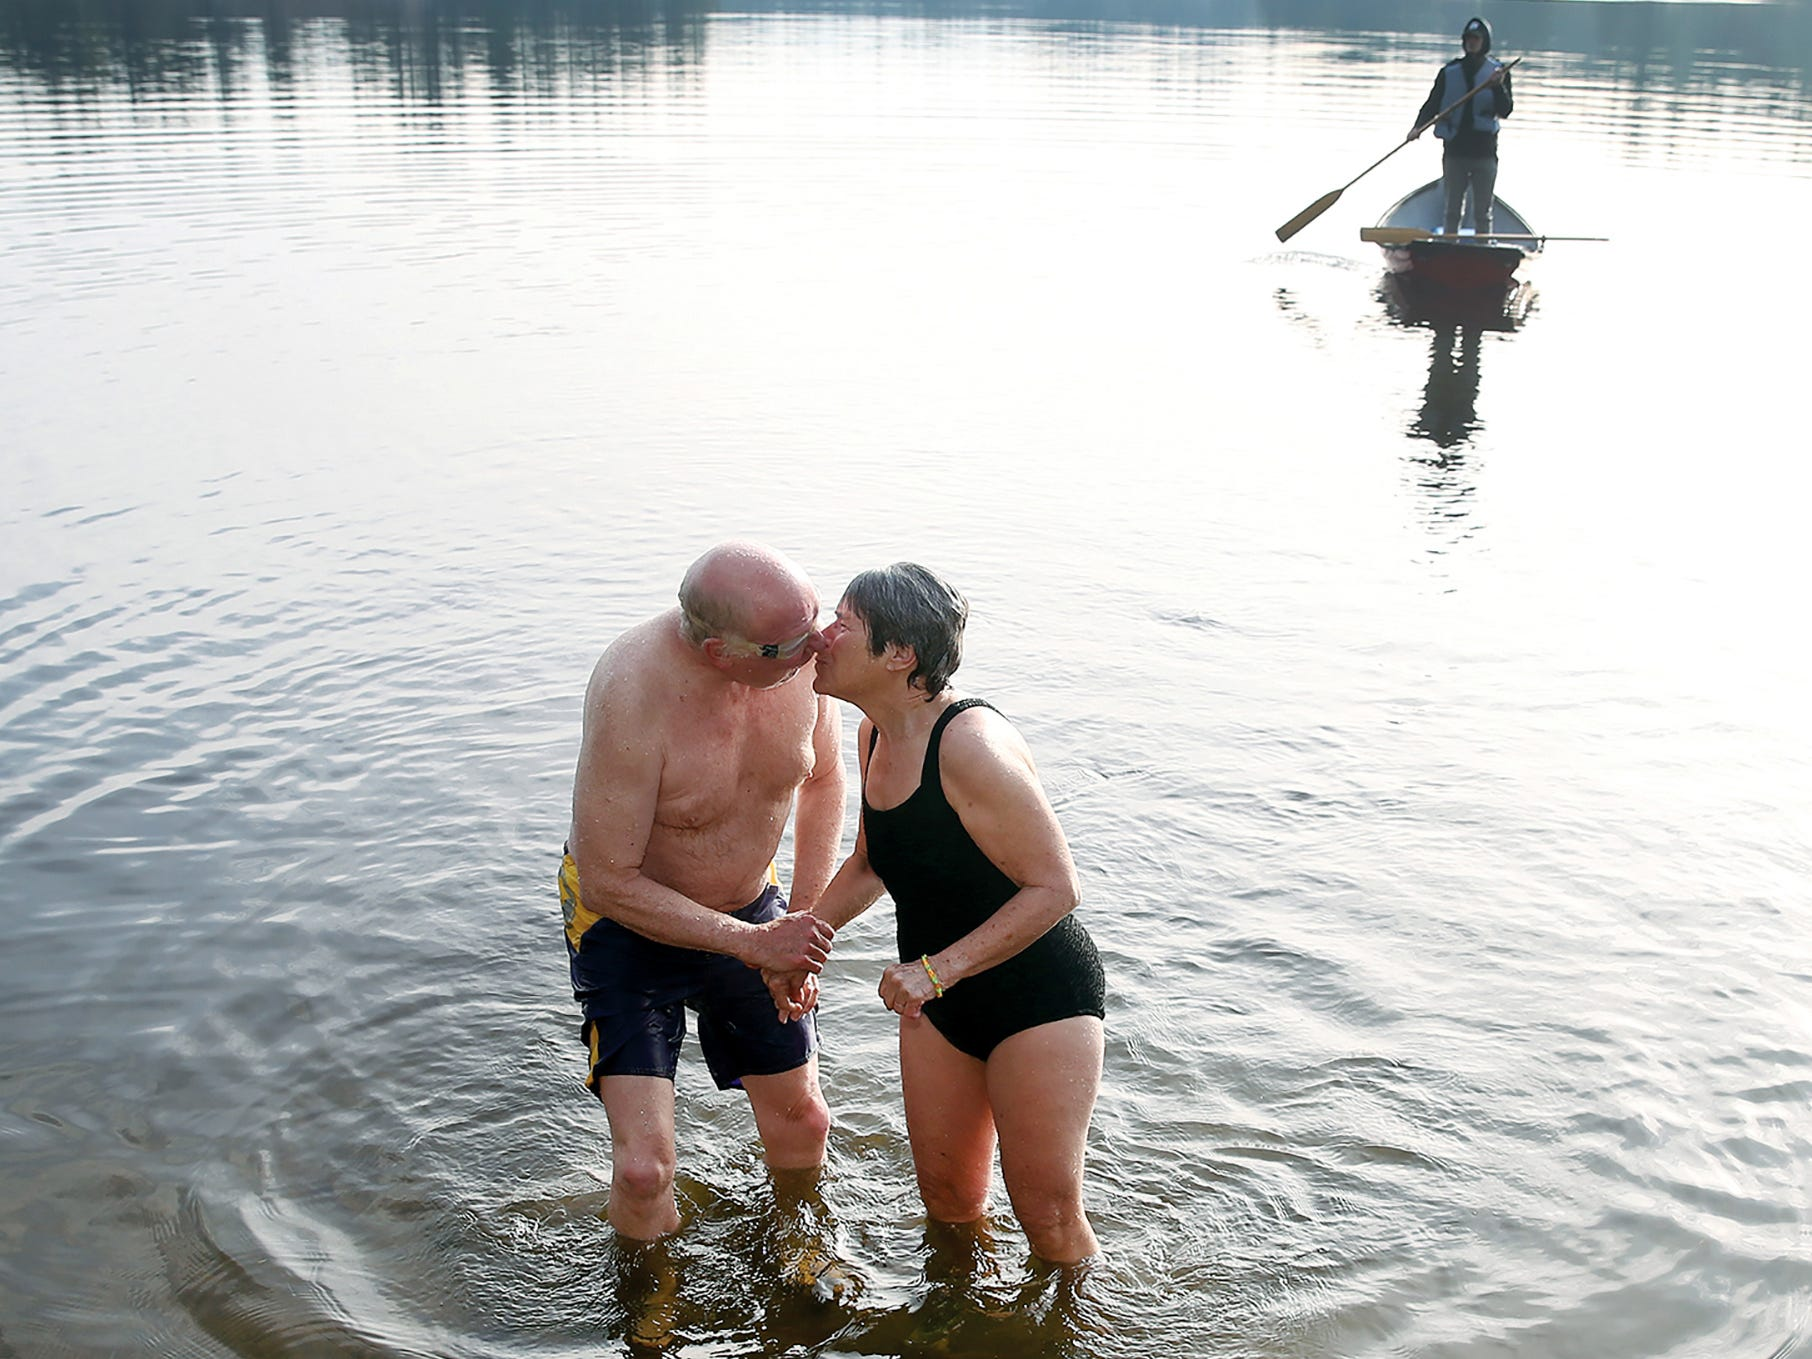 Mike Adams of Bremerton give his wife Katherine a kiss after they both did the New Year's plunge into Wildcat Lake on Jan. 1, 2017. Katherine is one of the founders of the event and has down  it for eight years, her husband did his fourth.